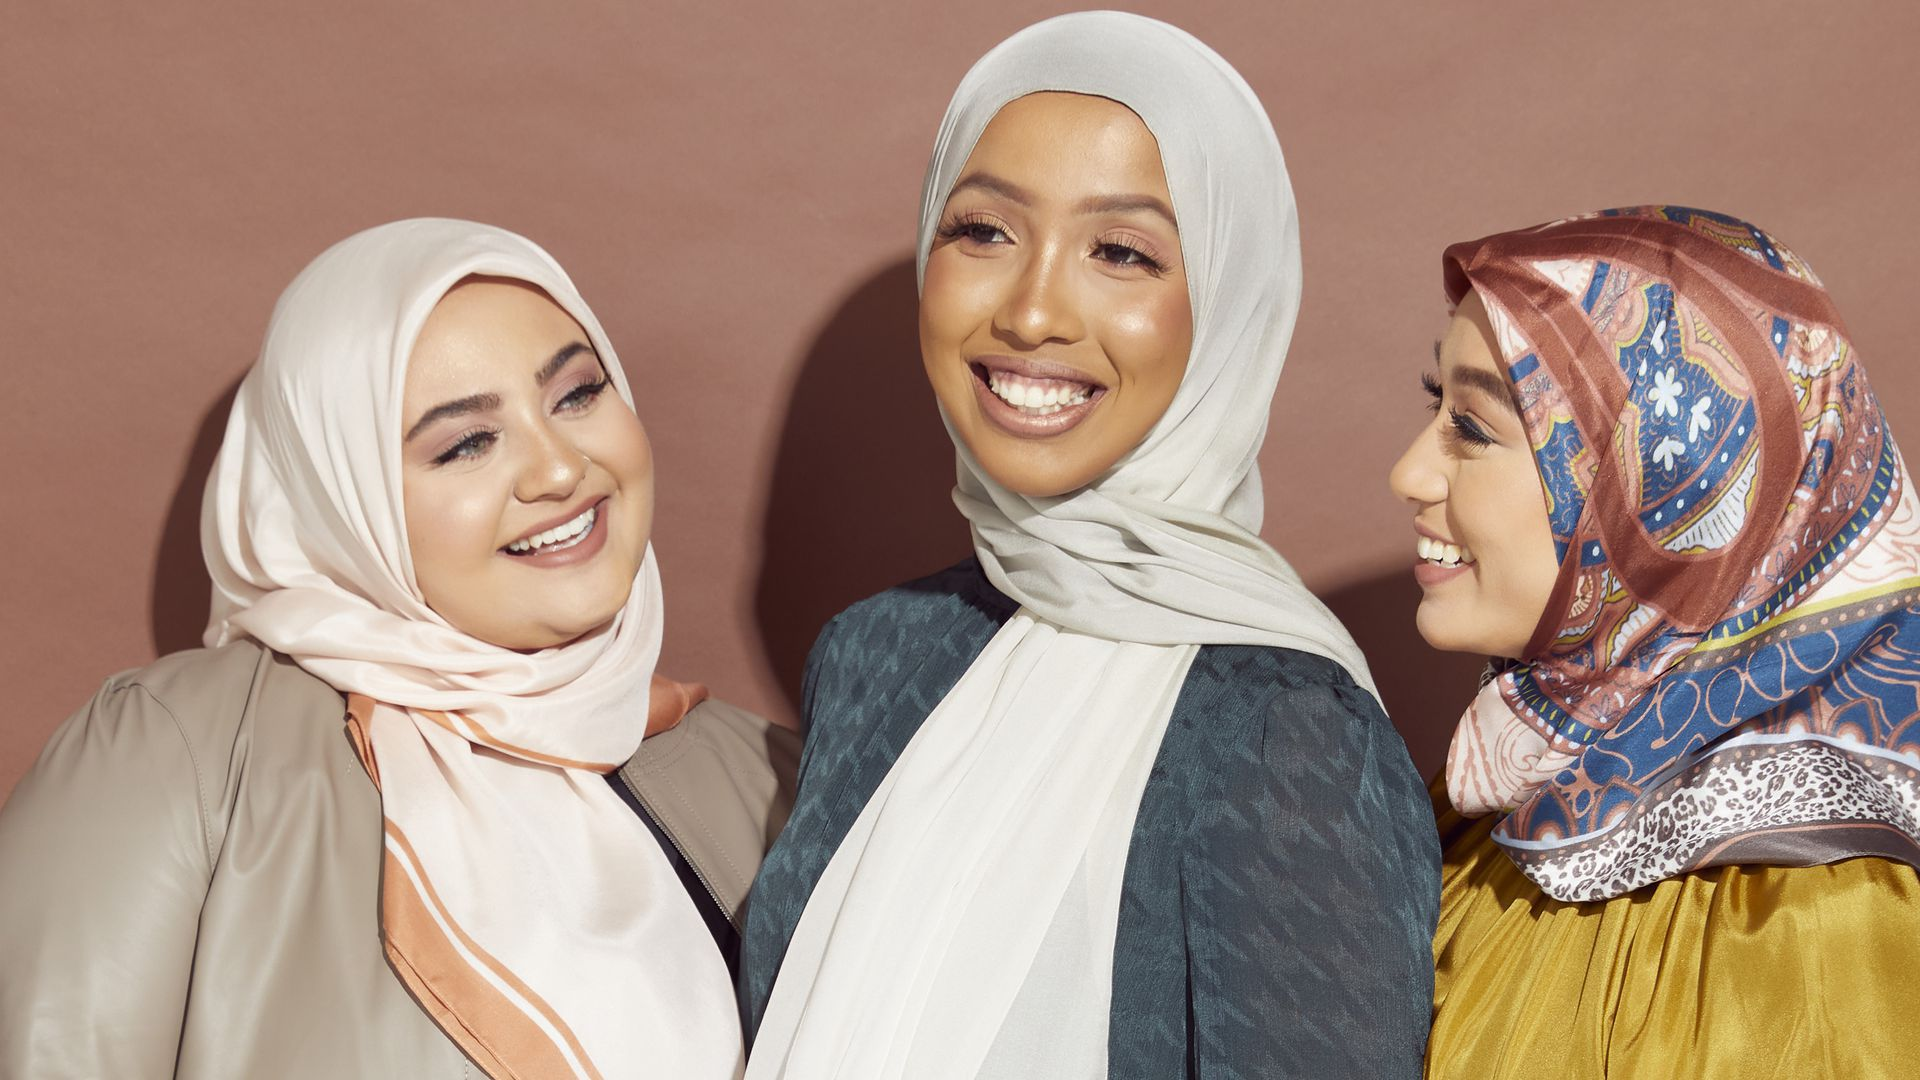 Three women wearing hijabs smile at one another.